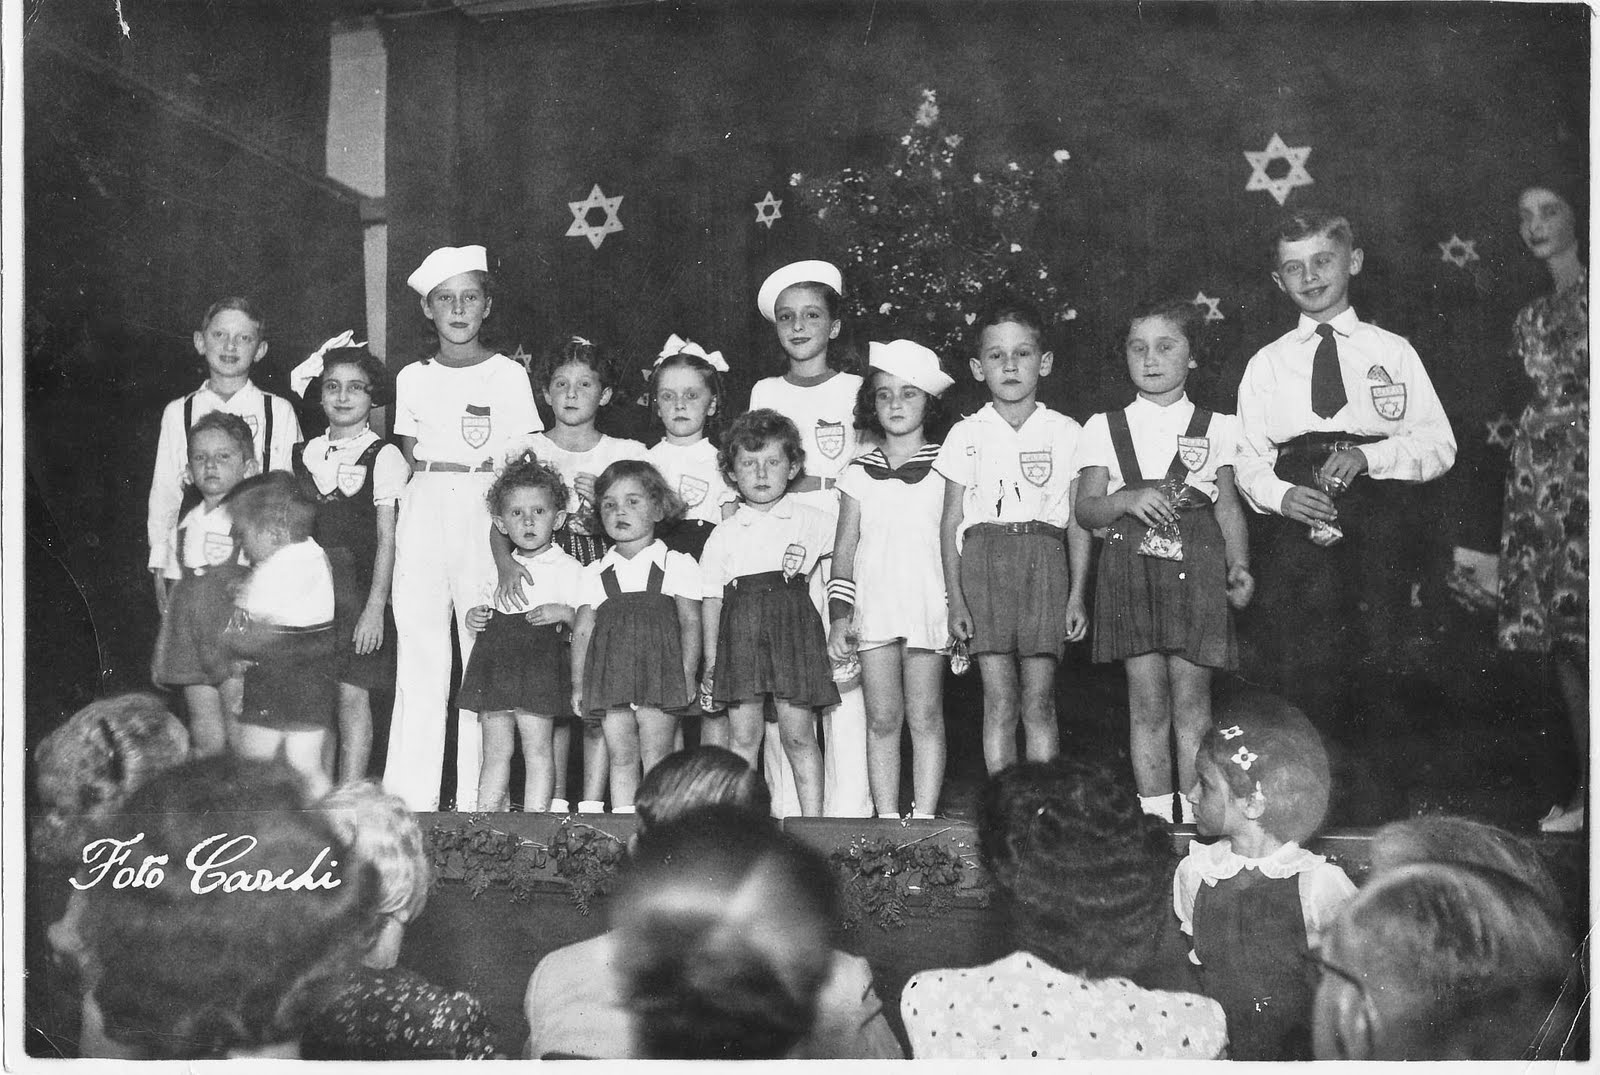 1947 photo of an event (probably Purim or Hannukah) at the Beneficienca (I think) in Guayaquil.jpg